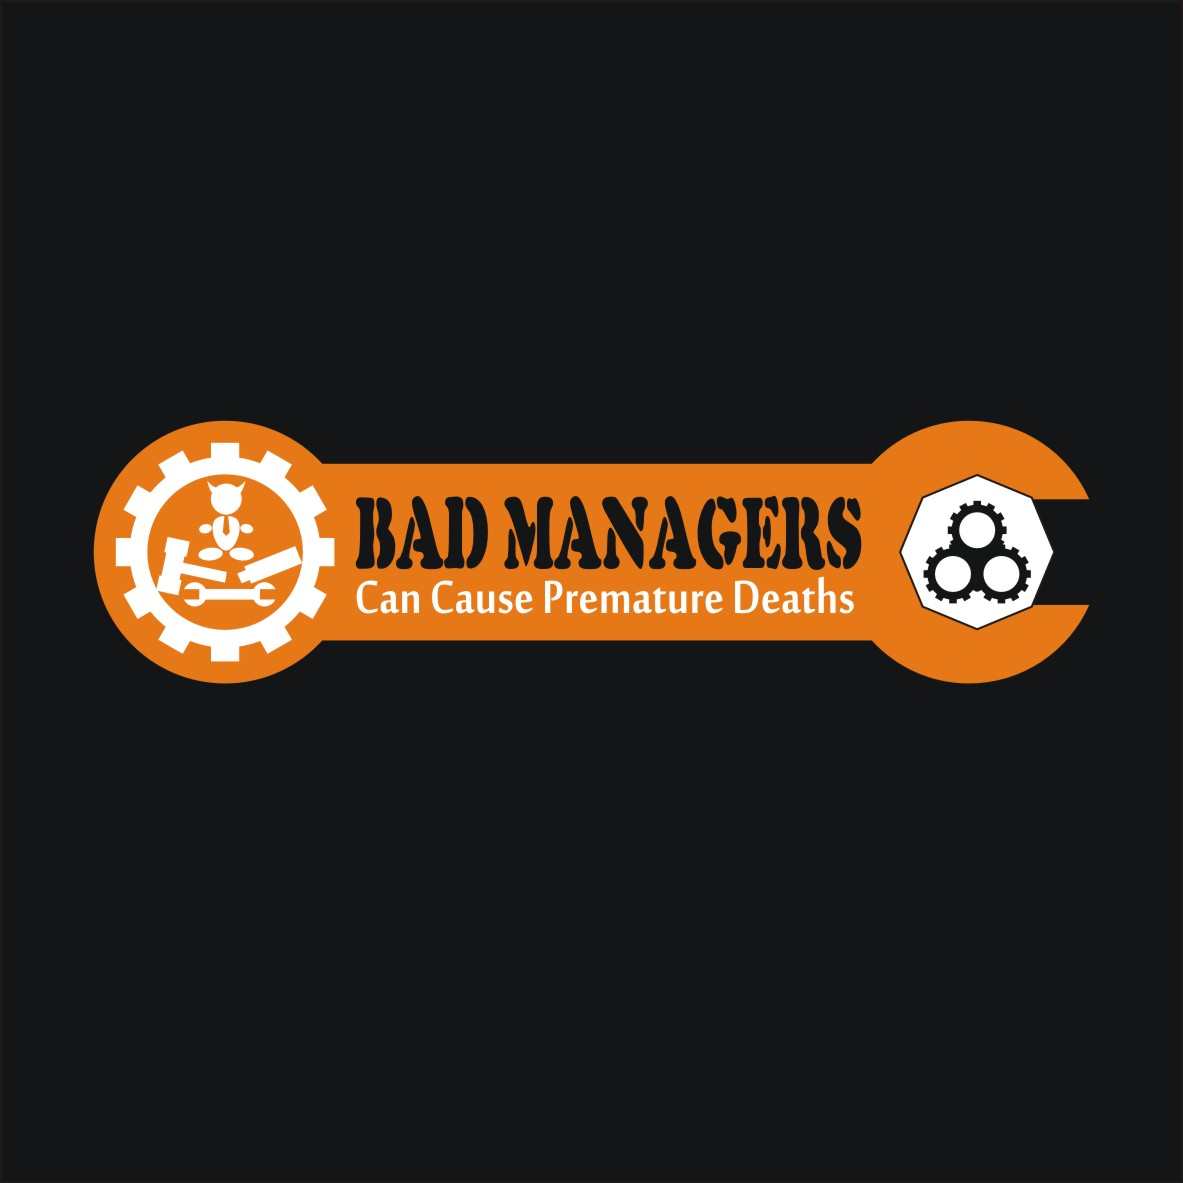 Logo Design by arteo_design - Entry No. 73 in the Logo Design Contest Unique Logo Design Wanted for Bad Managers Can Cause Premature Deaths.